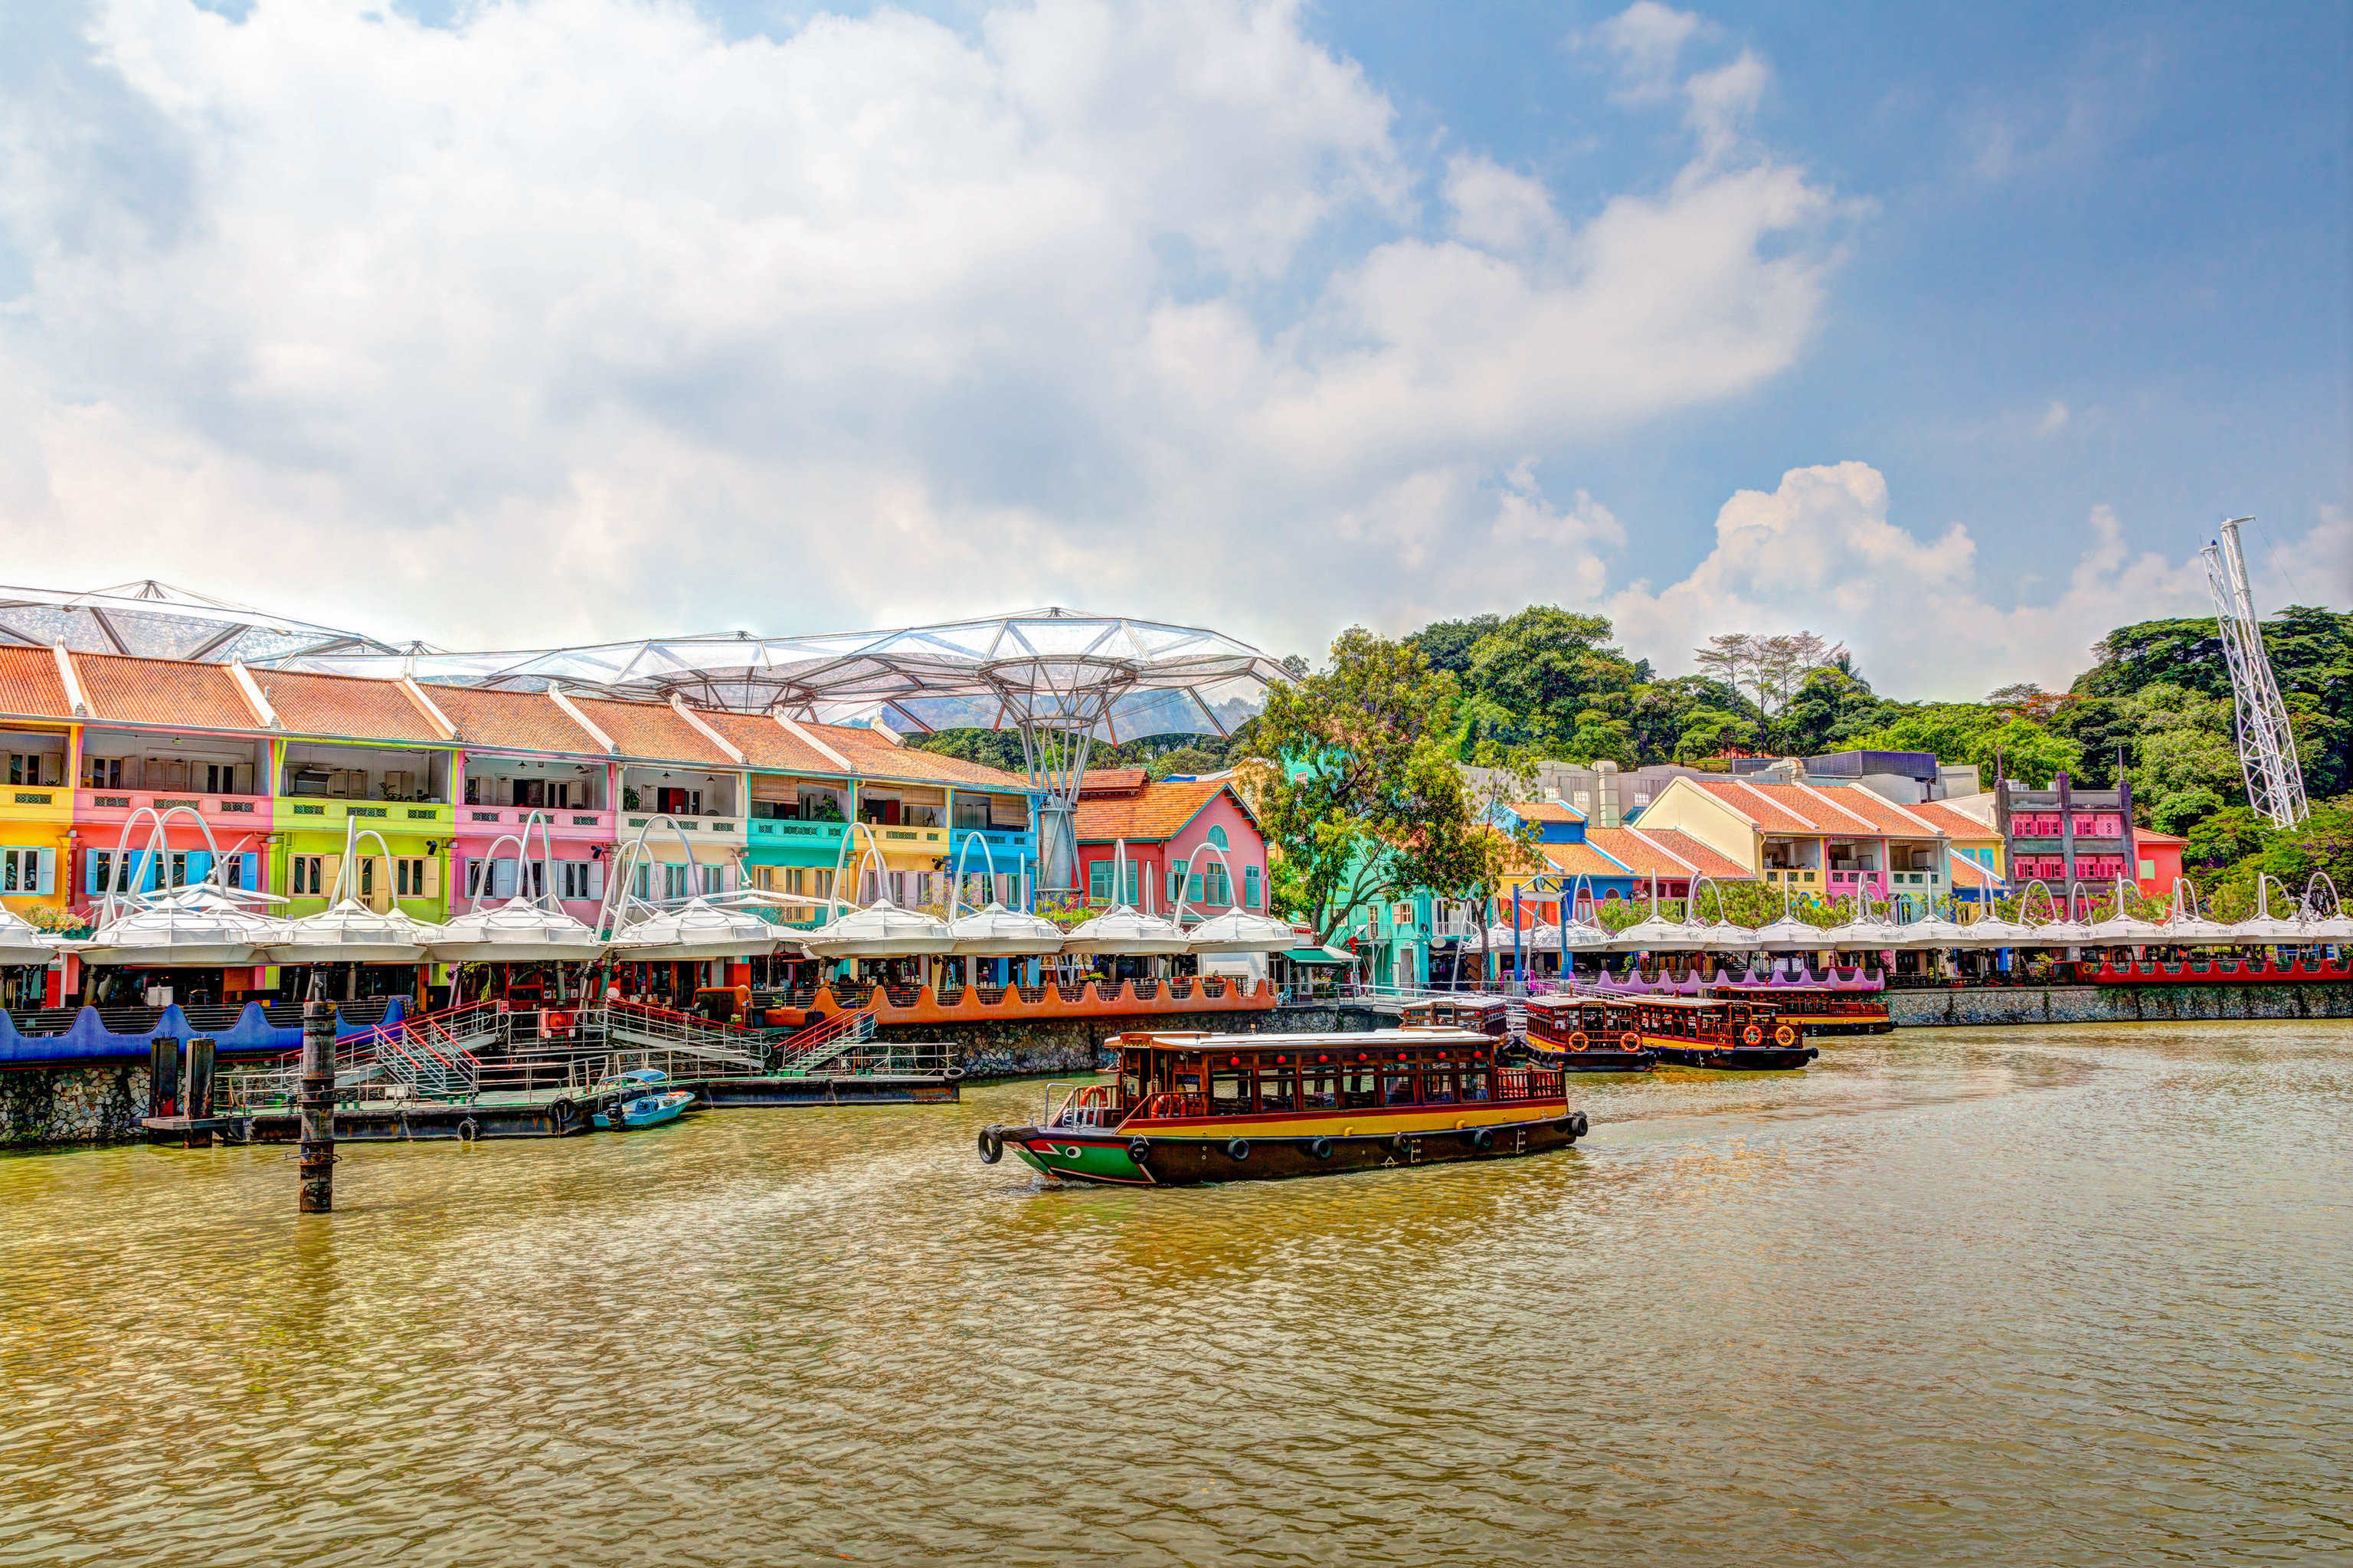 Offbeat Singapore Trip Ideas waterway water transportation sky water leisure Boat reflection tourist attraction tree River tourism City plant Resort recreation Canal landscape Lake boating